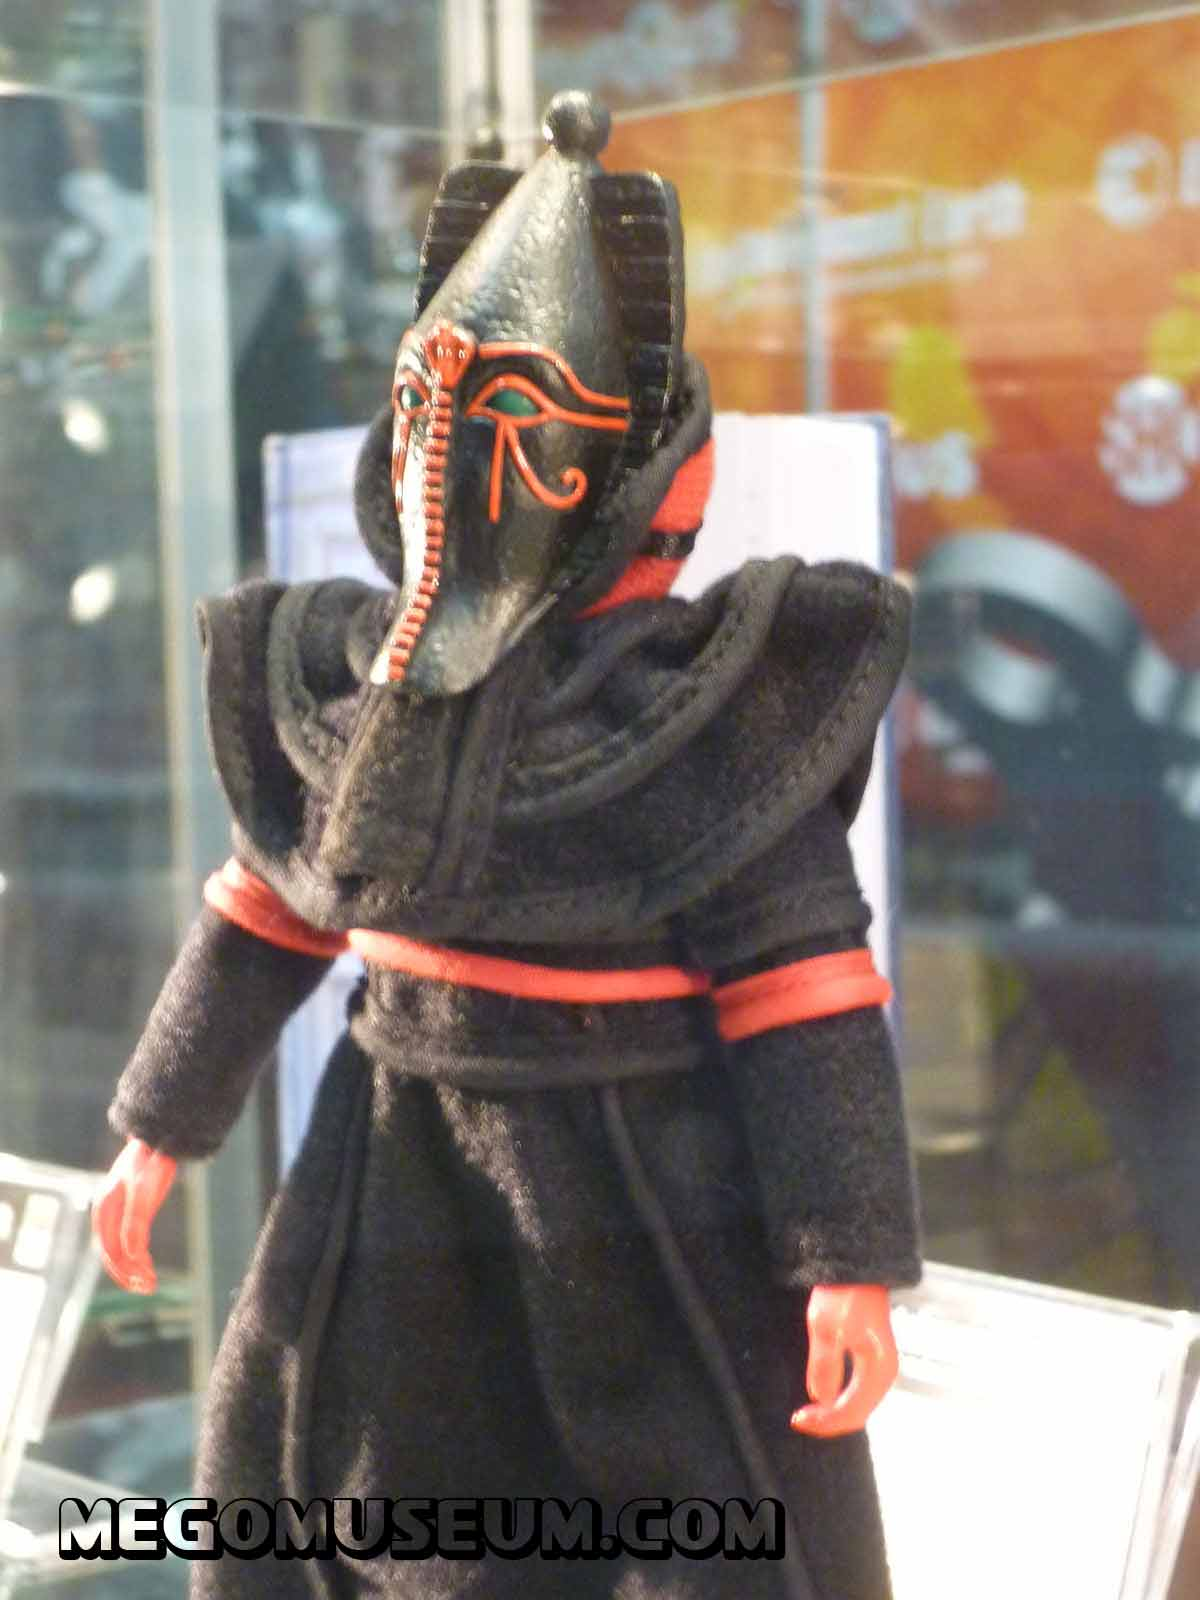 Mego sutekh from Doctor Who